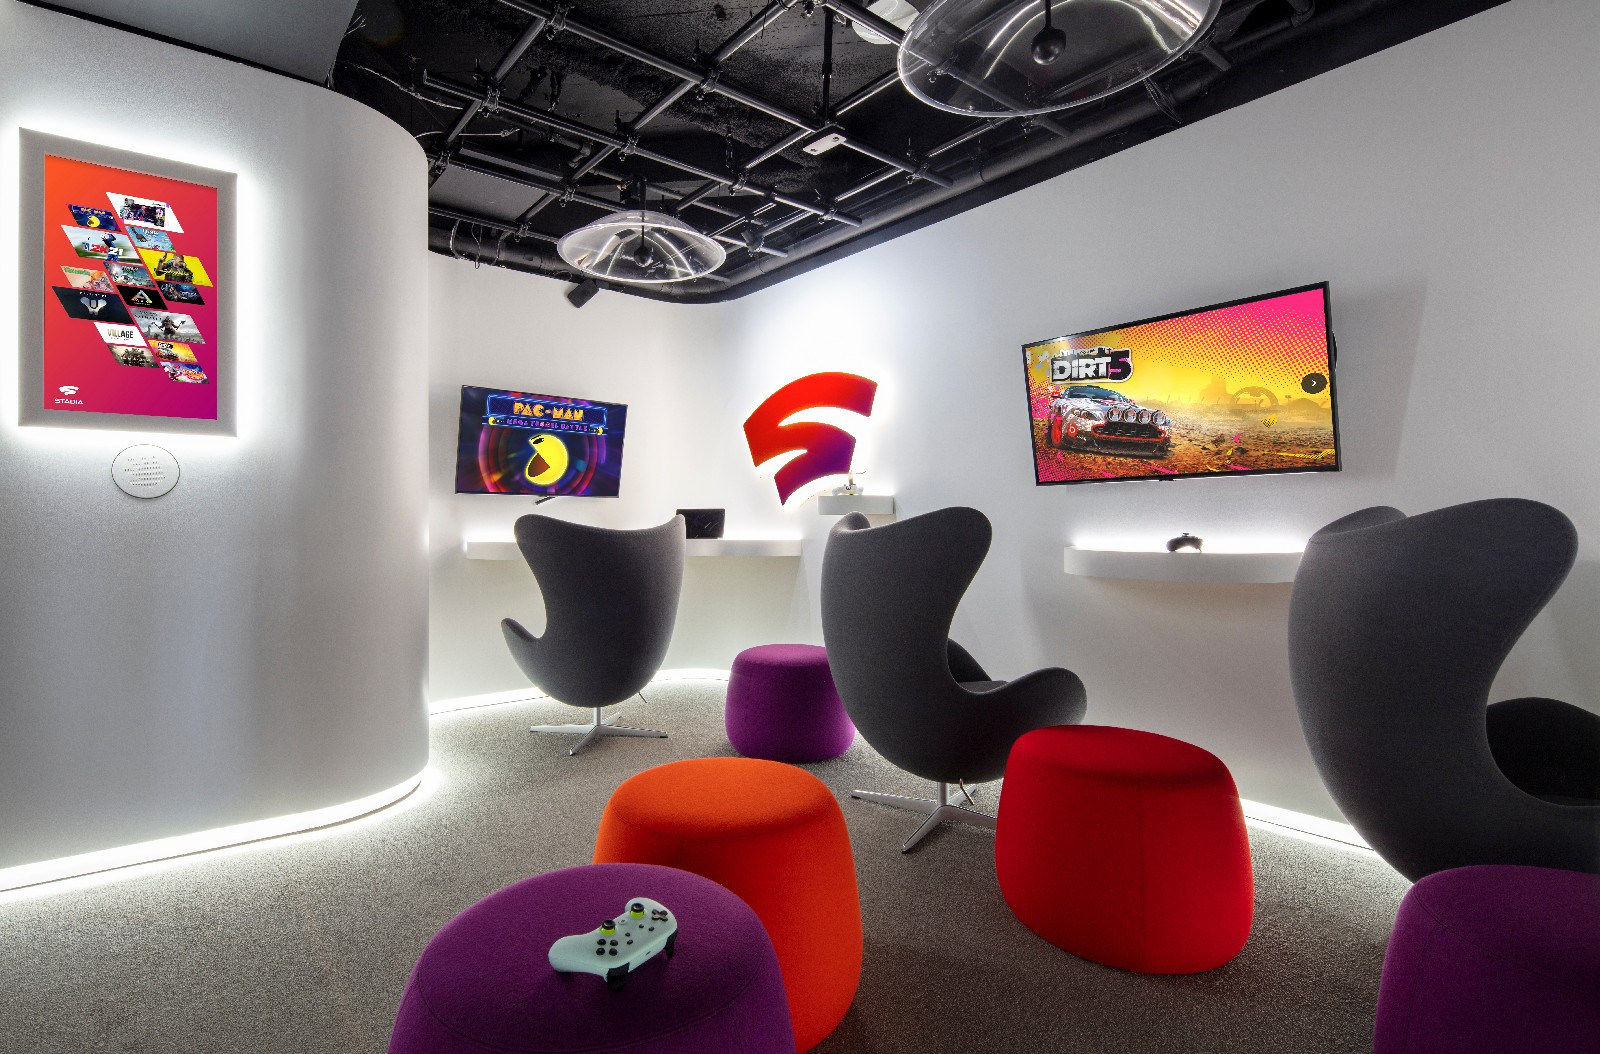 <p>Google Store Chelsea. A Stadia-themed Sandbox with wall-mounted screens, three chairs, four stools in matching purple and orange colors and a couple of controllers lying on small ledges.</p>